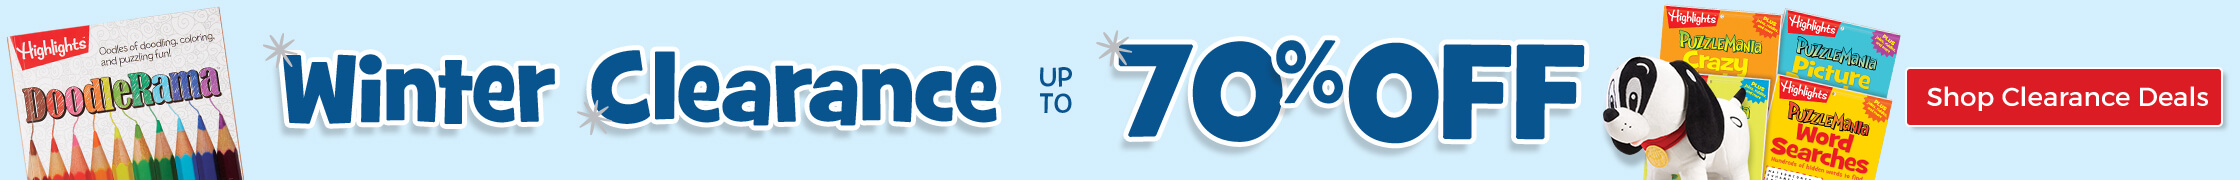 Save up to 70% on dozens of items during Winter Clearance sale – don't miss it!